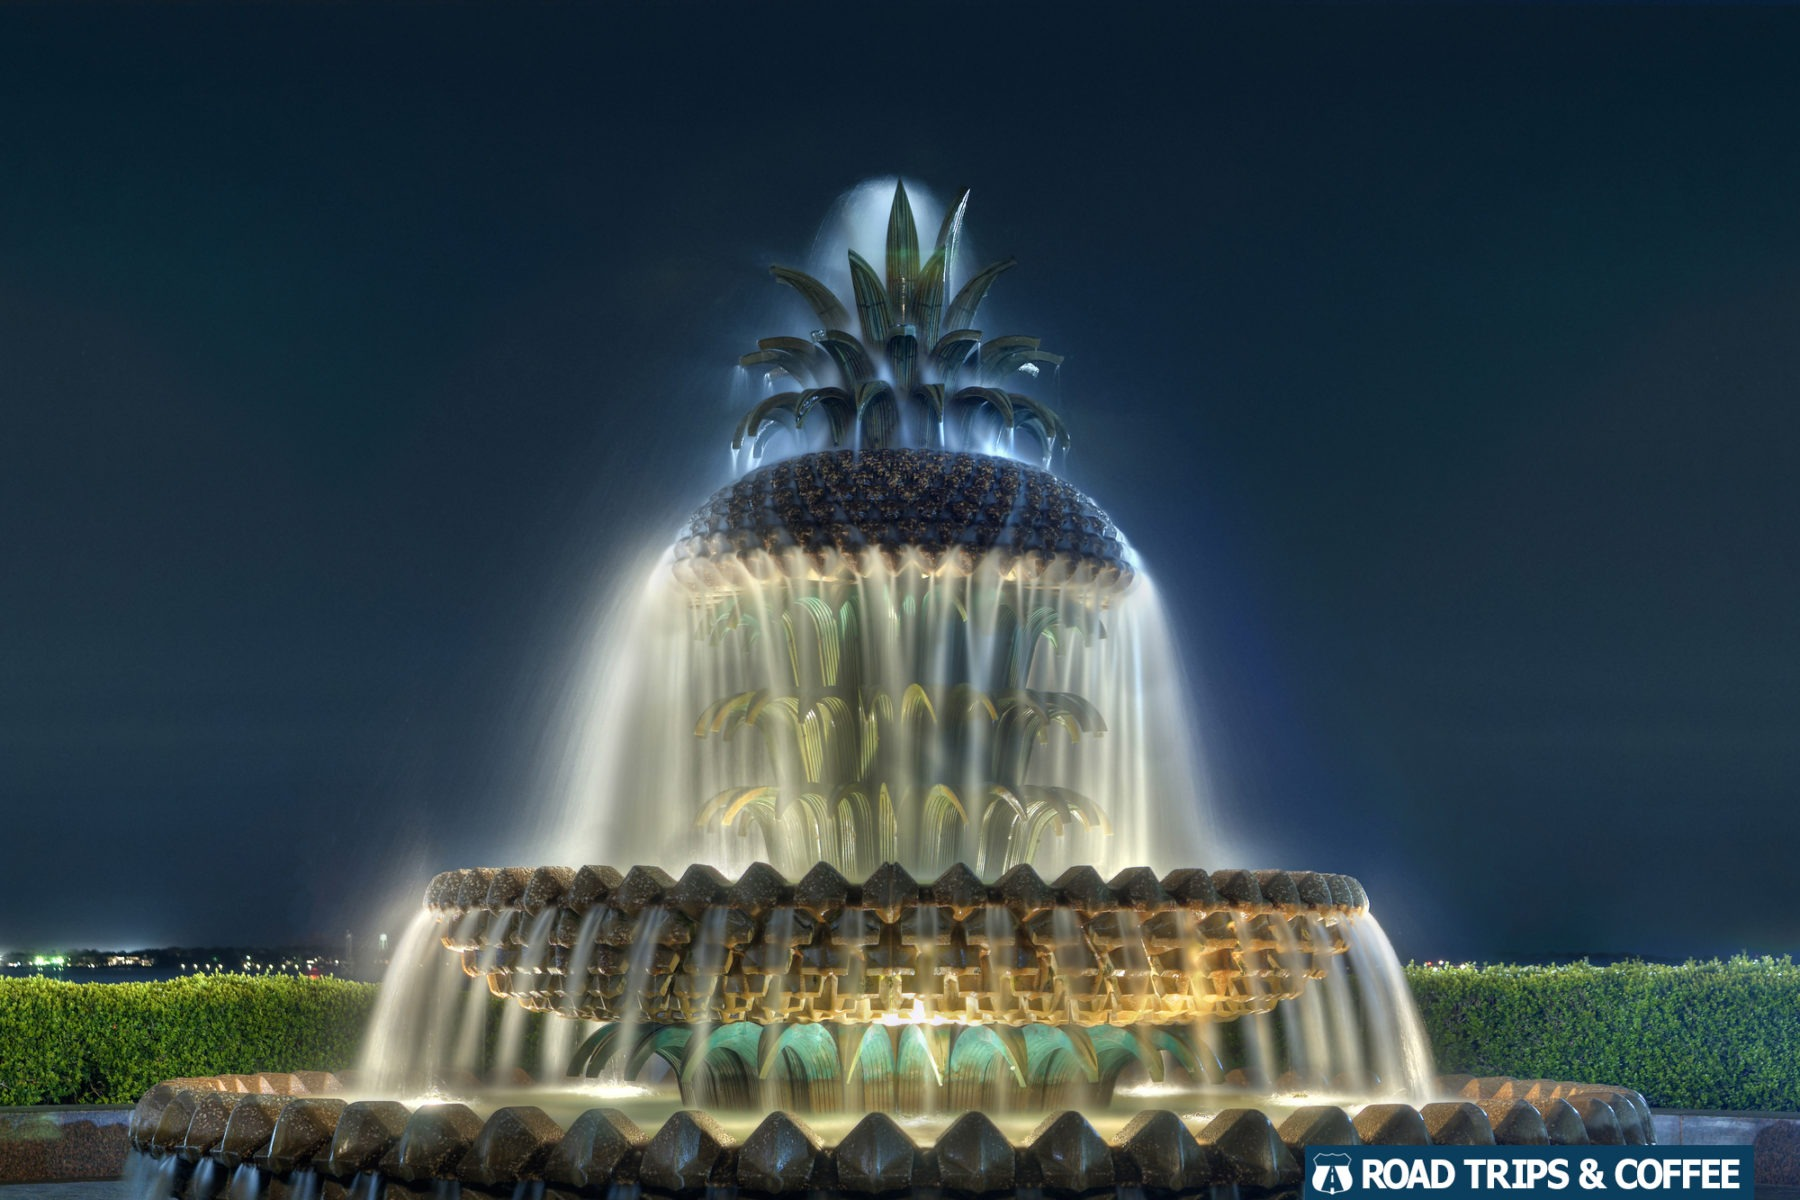 The Pineapple Water Fountain at night in Charleston, South Carolina